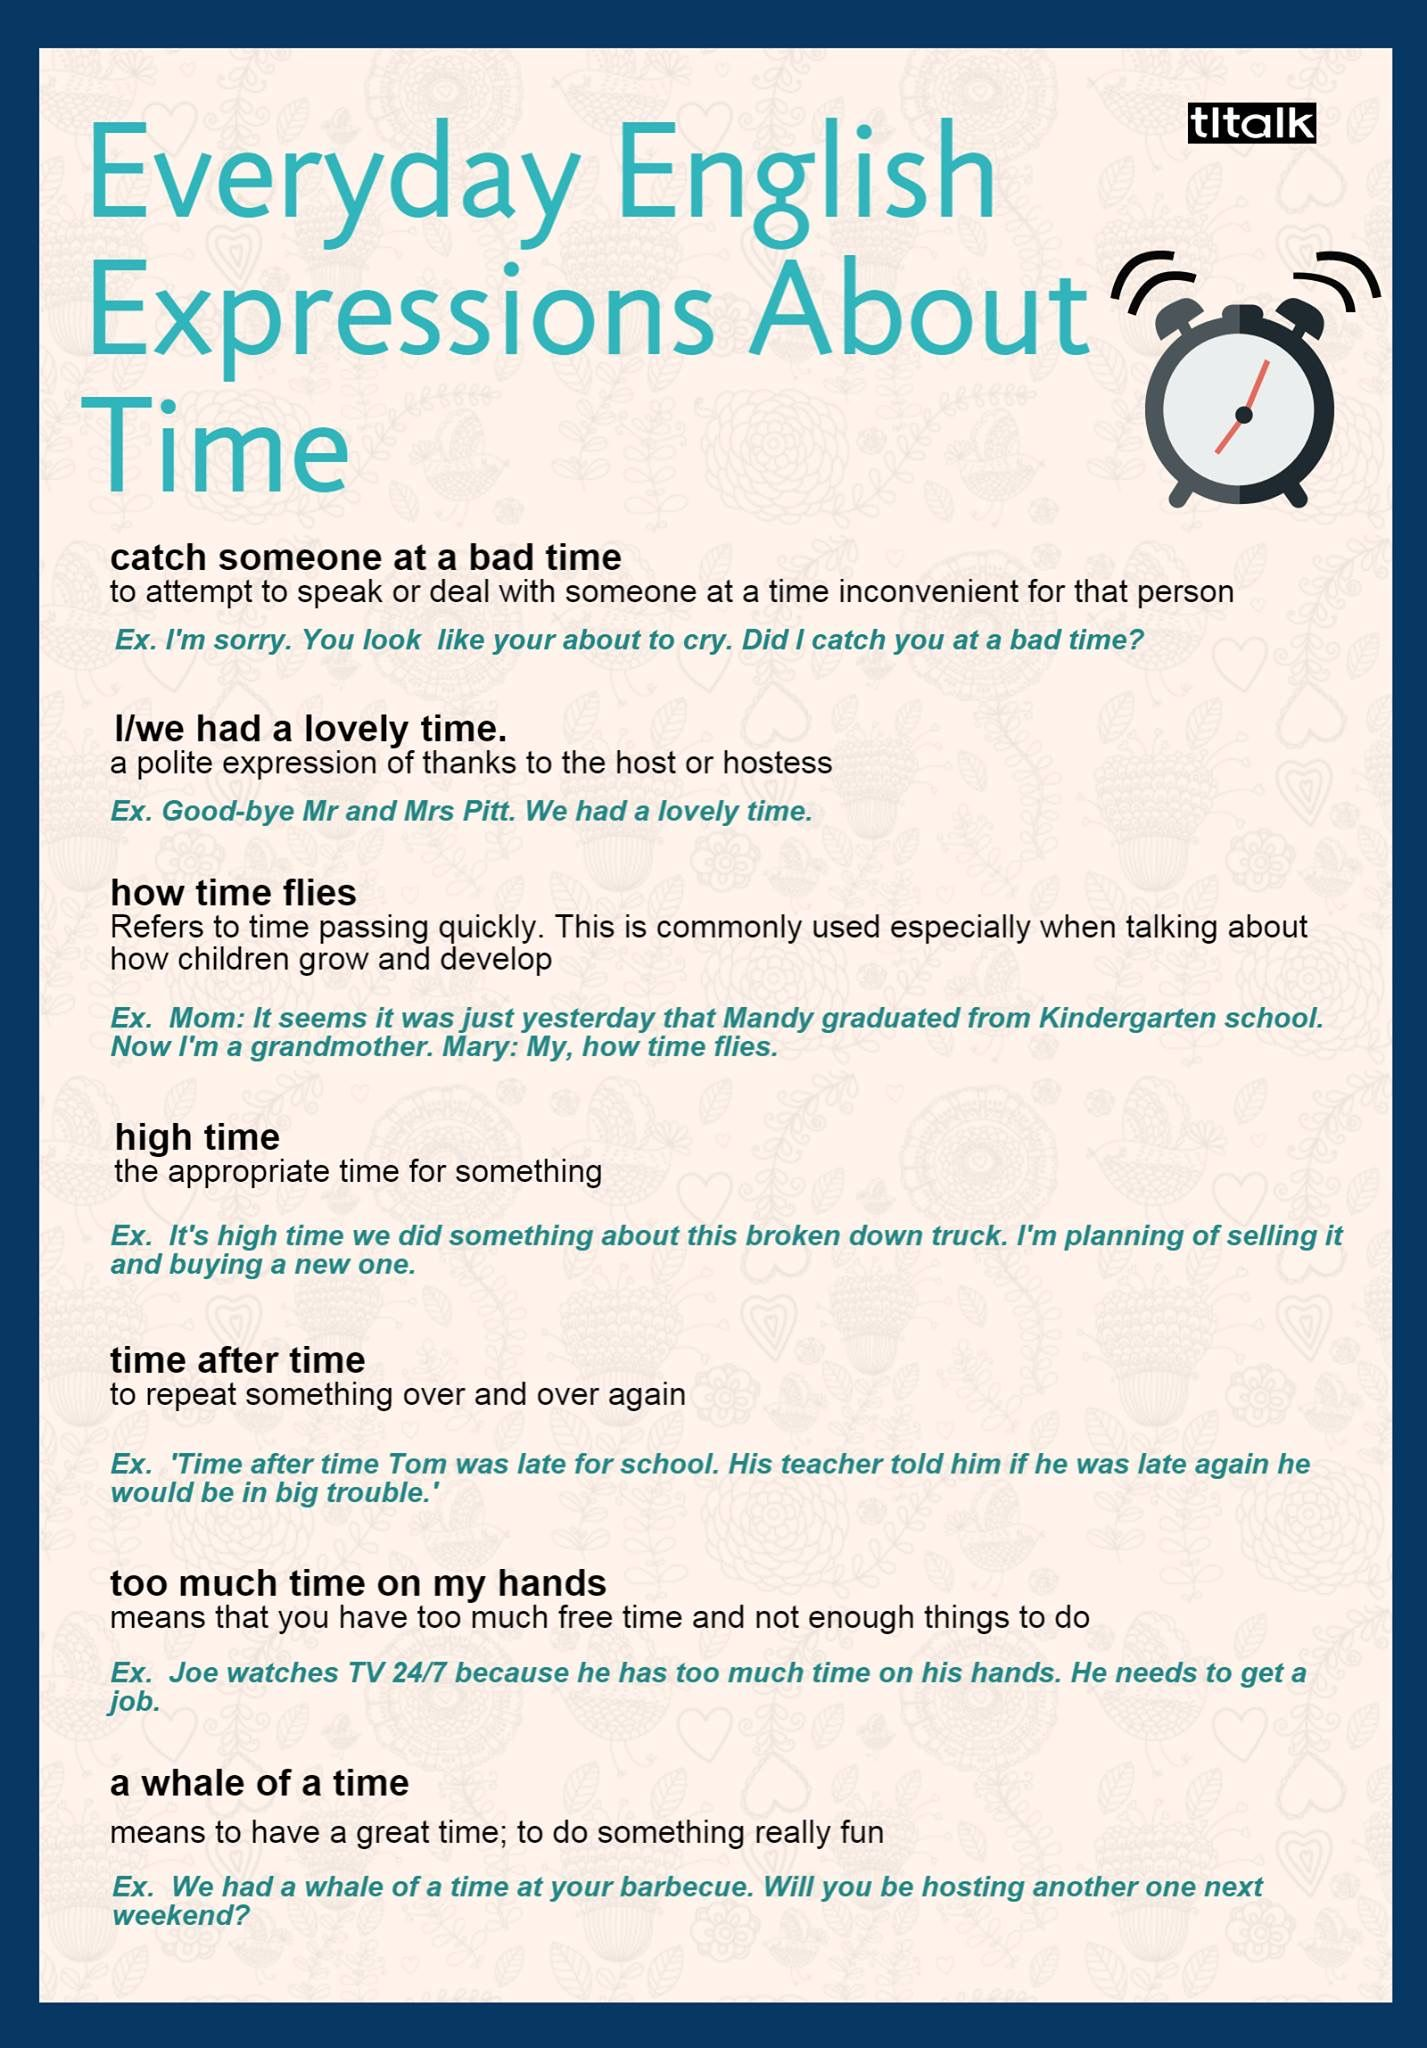 Everyday English Expressions About Time